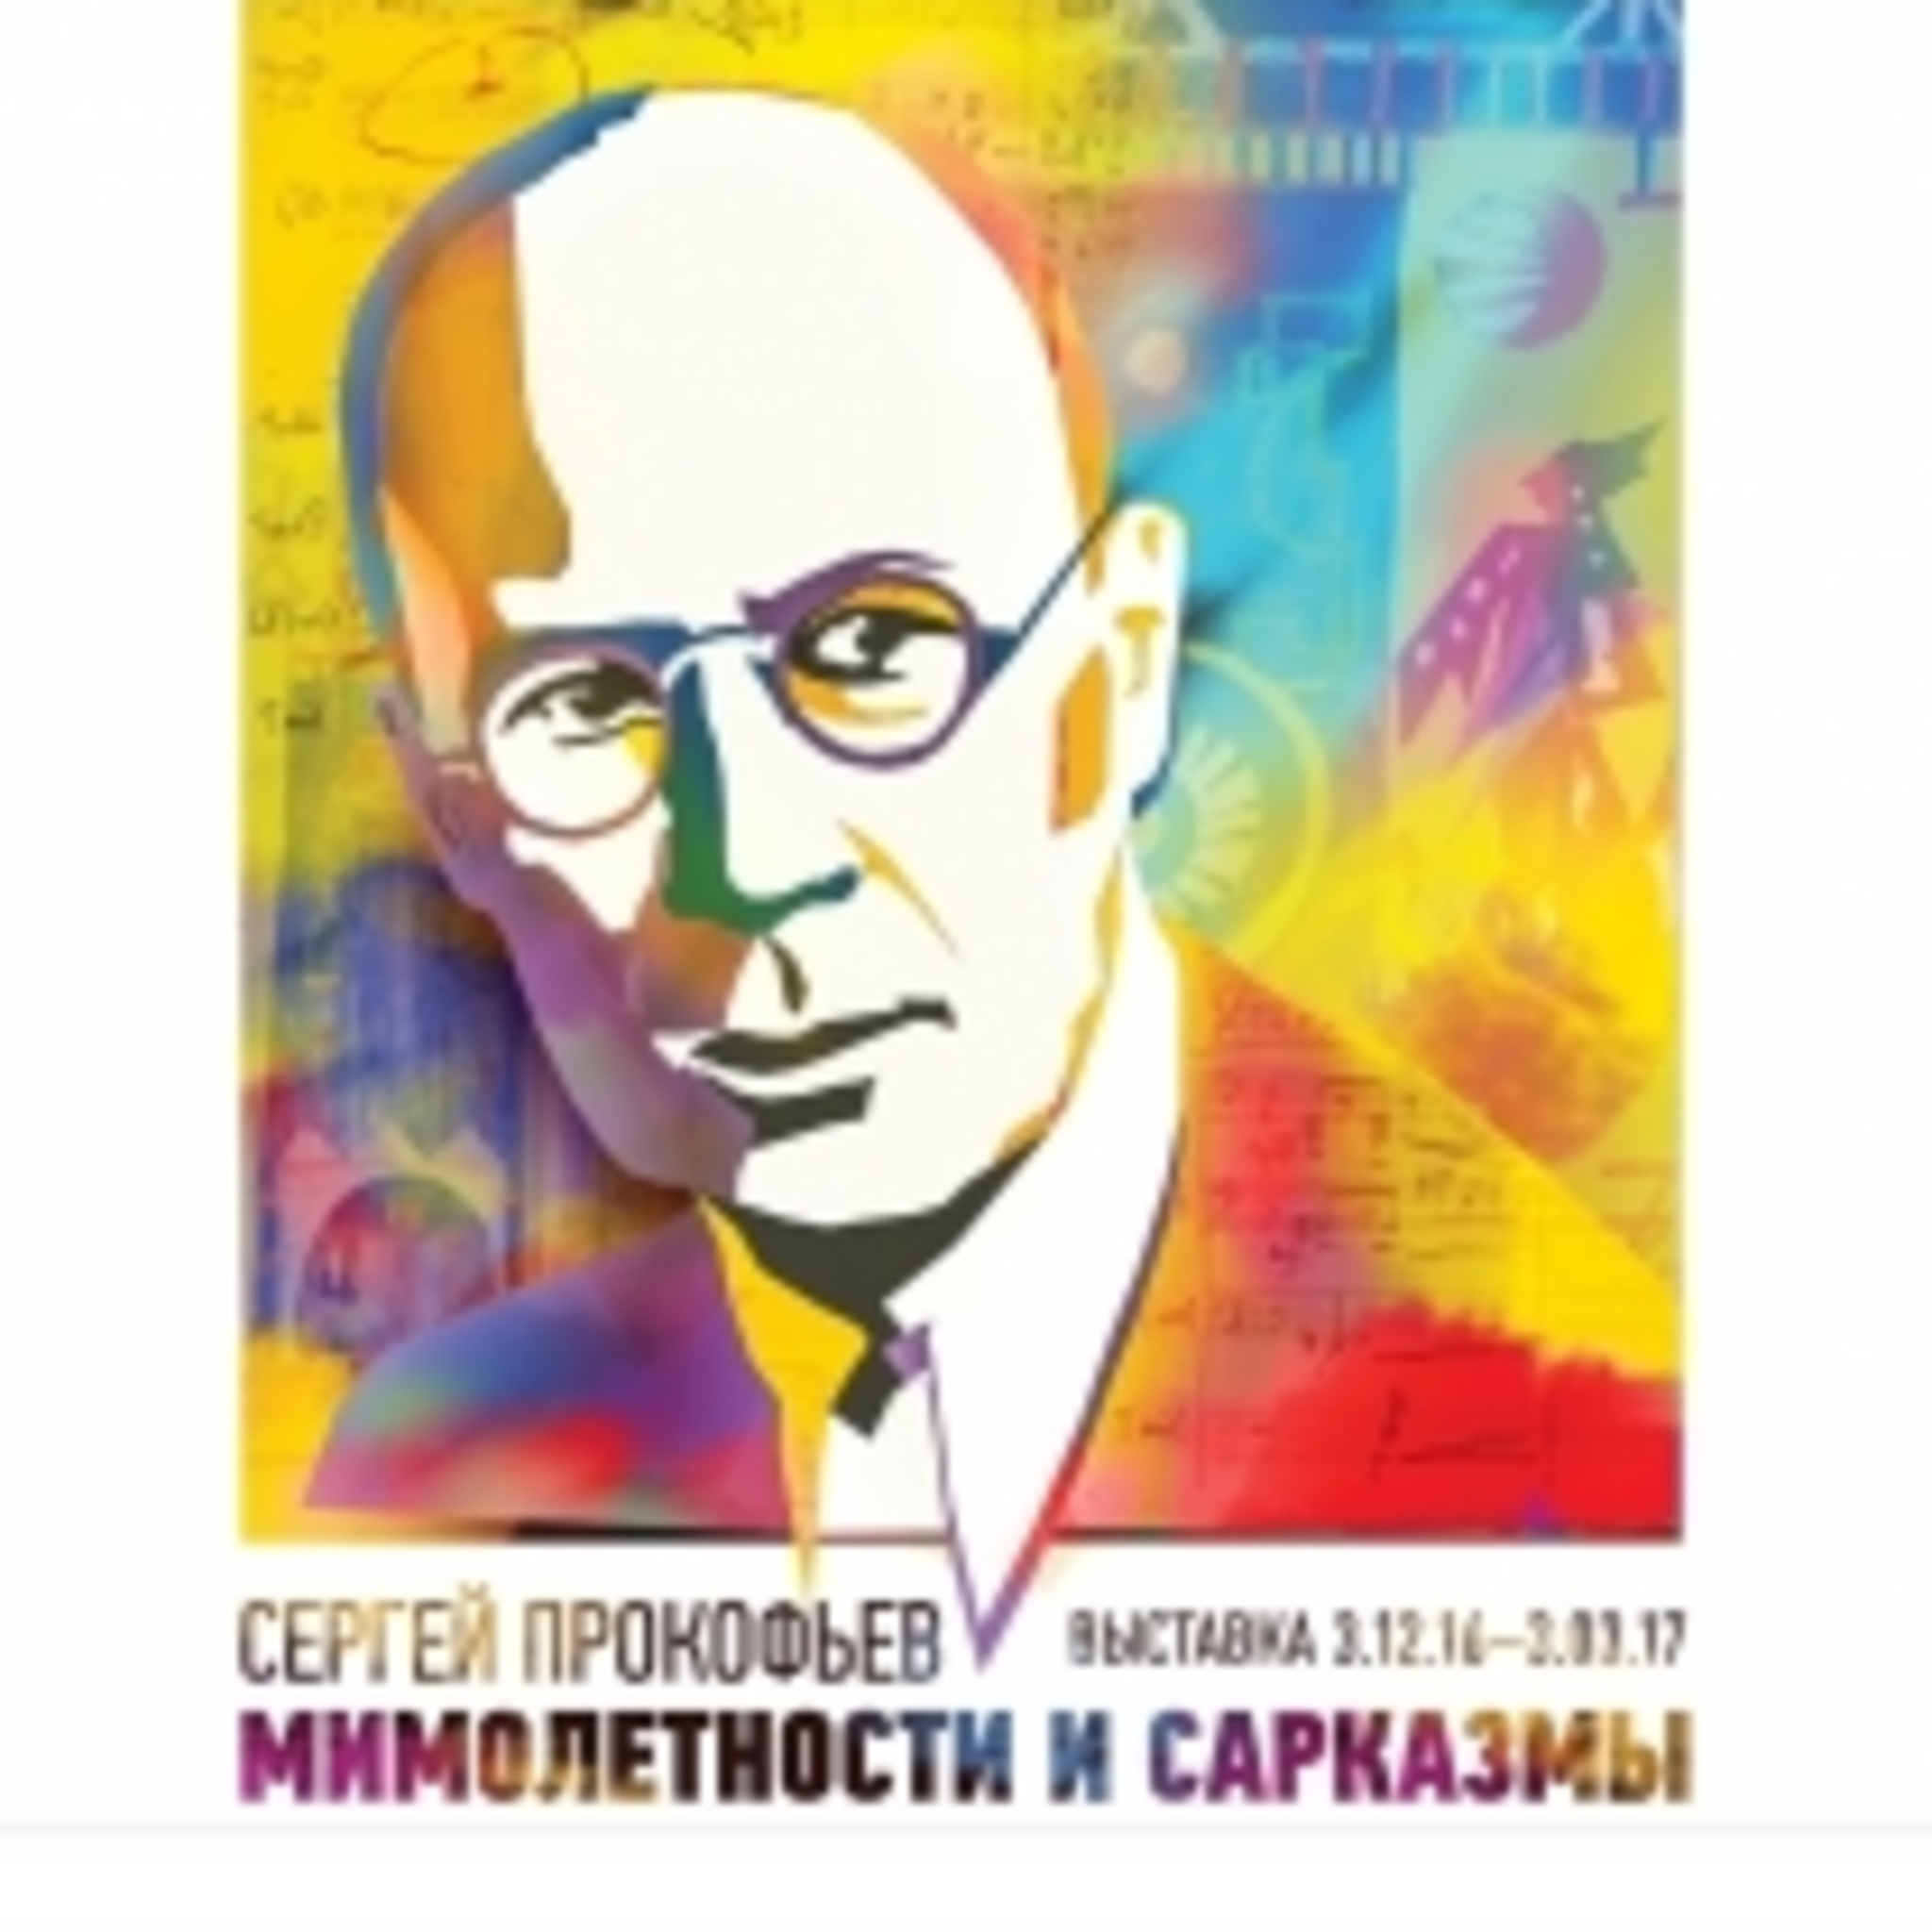 Exhibition Sergei Prokofiev. Fugitives and sarcasm